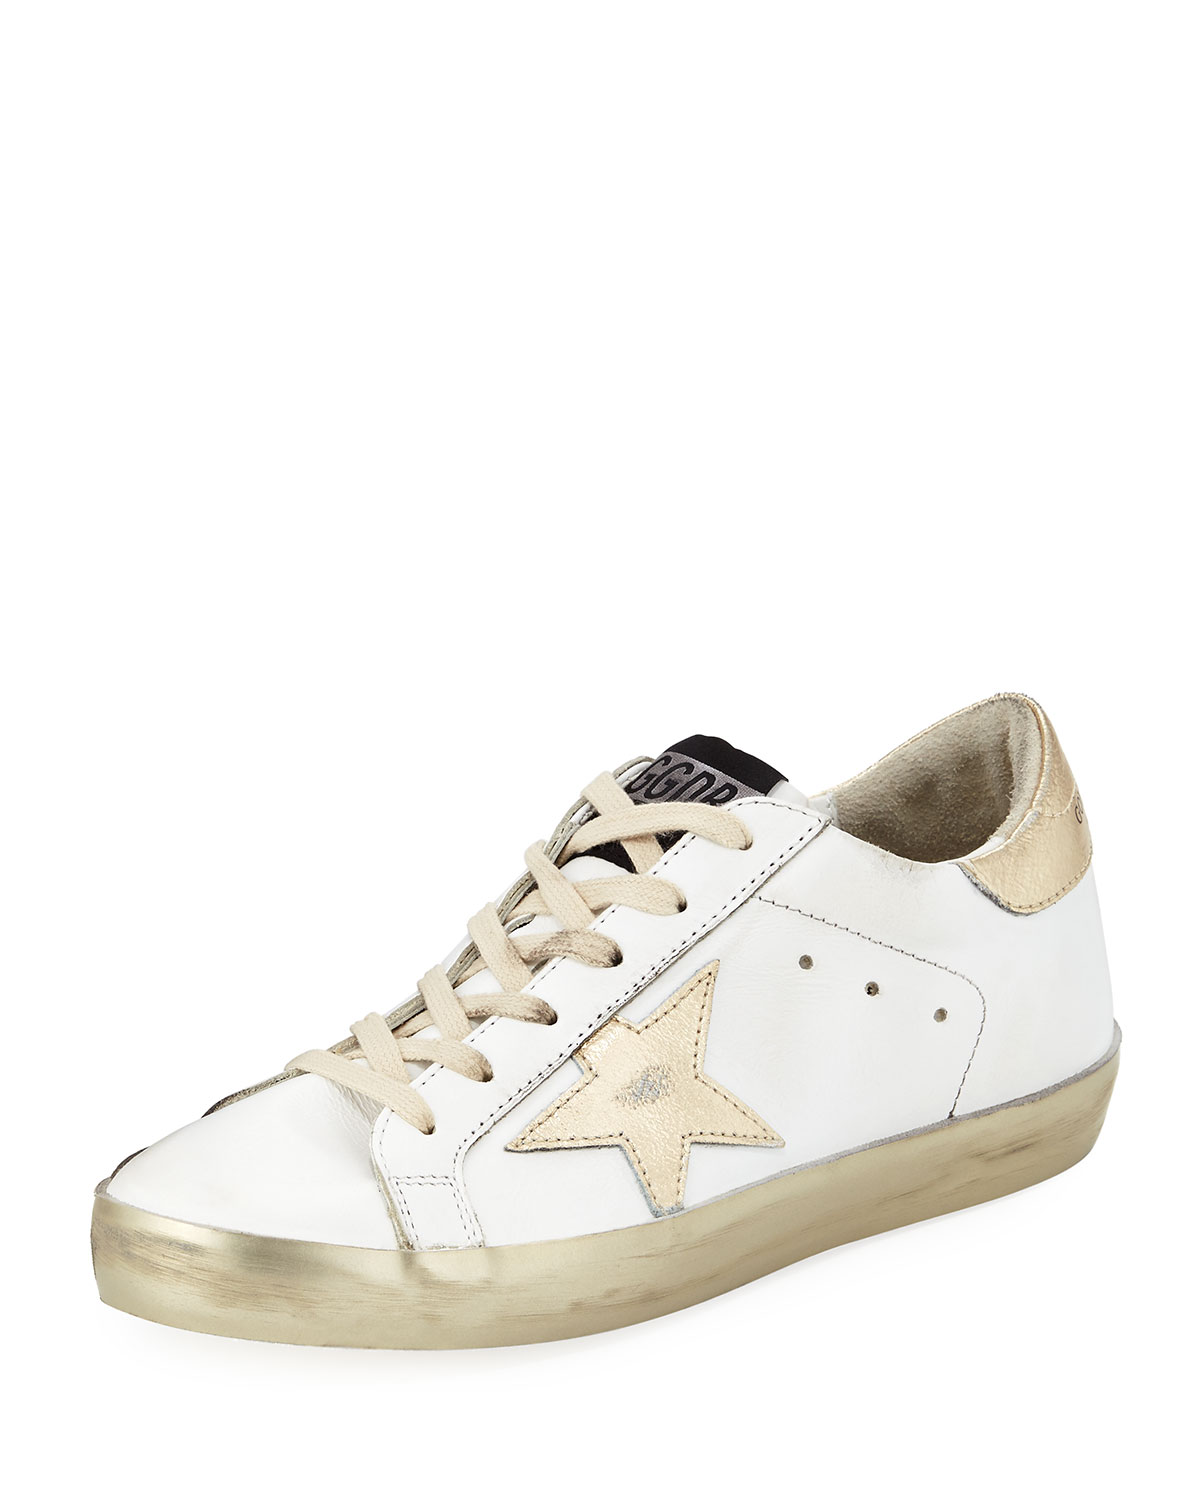 0ac538312c9f4 Golden Goose Distressed Leather Star Sneakers | Neiman Marcus